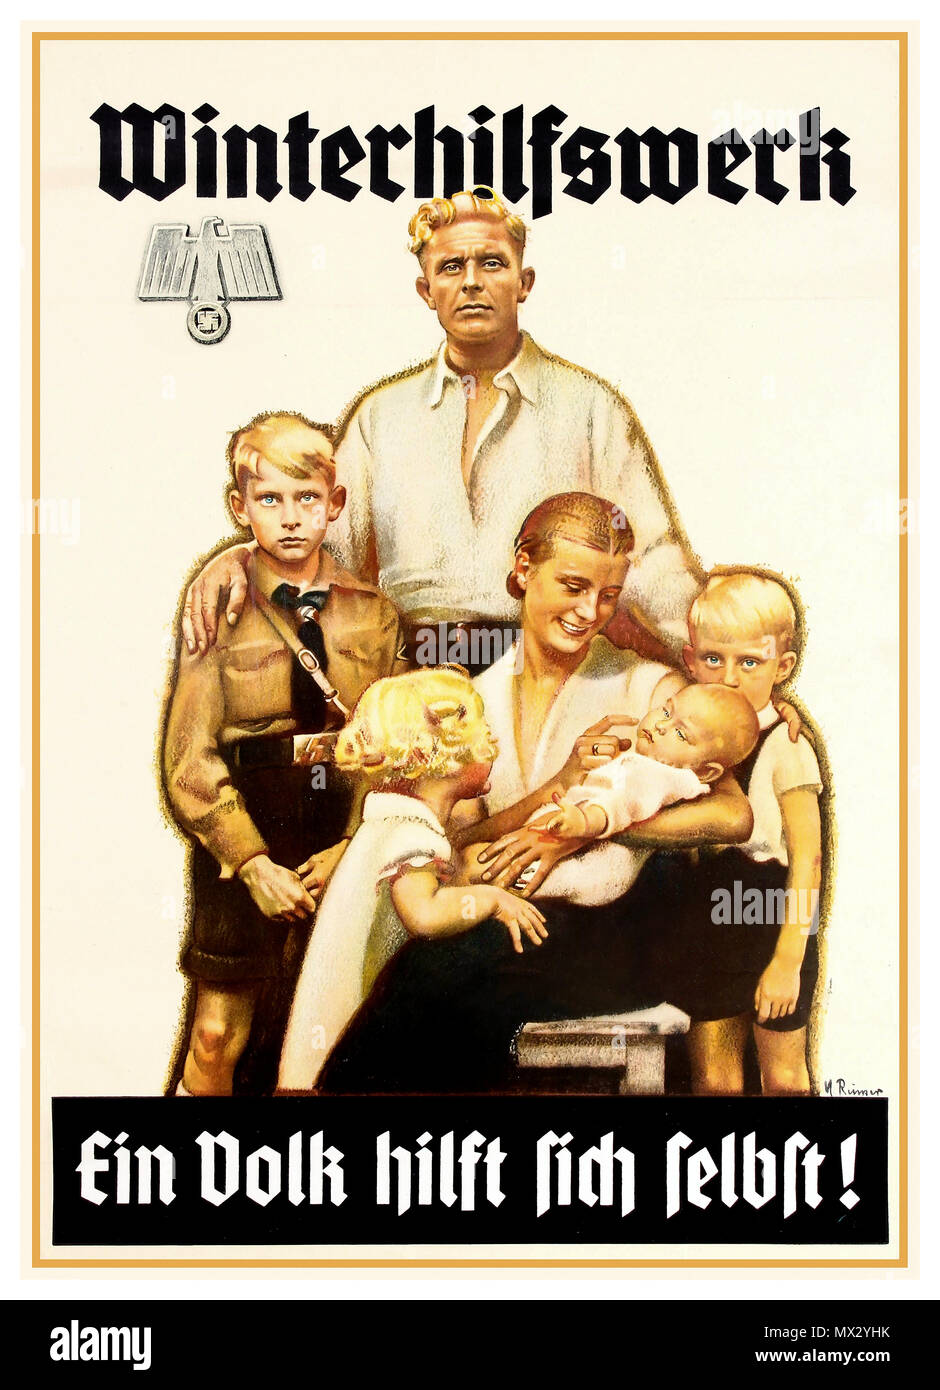 Vintage 1940's WW2 Nazi Propaganda Poster with stereotypical blond aryan German family group of six including a boy in Hitler Youth uniform, promoting winter charity for people to help each other  'Winterhilfswerk' Nazi Germany World War II - Stock Image